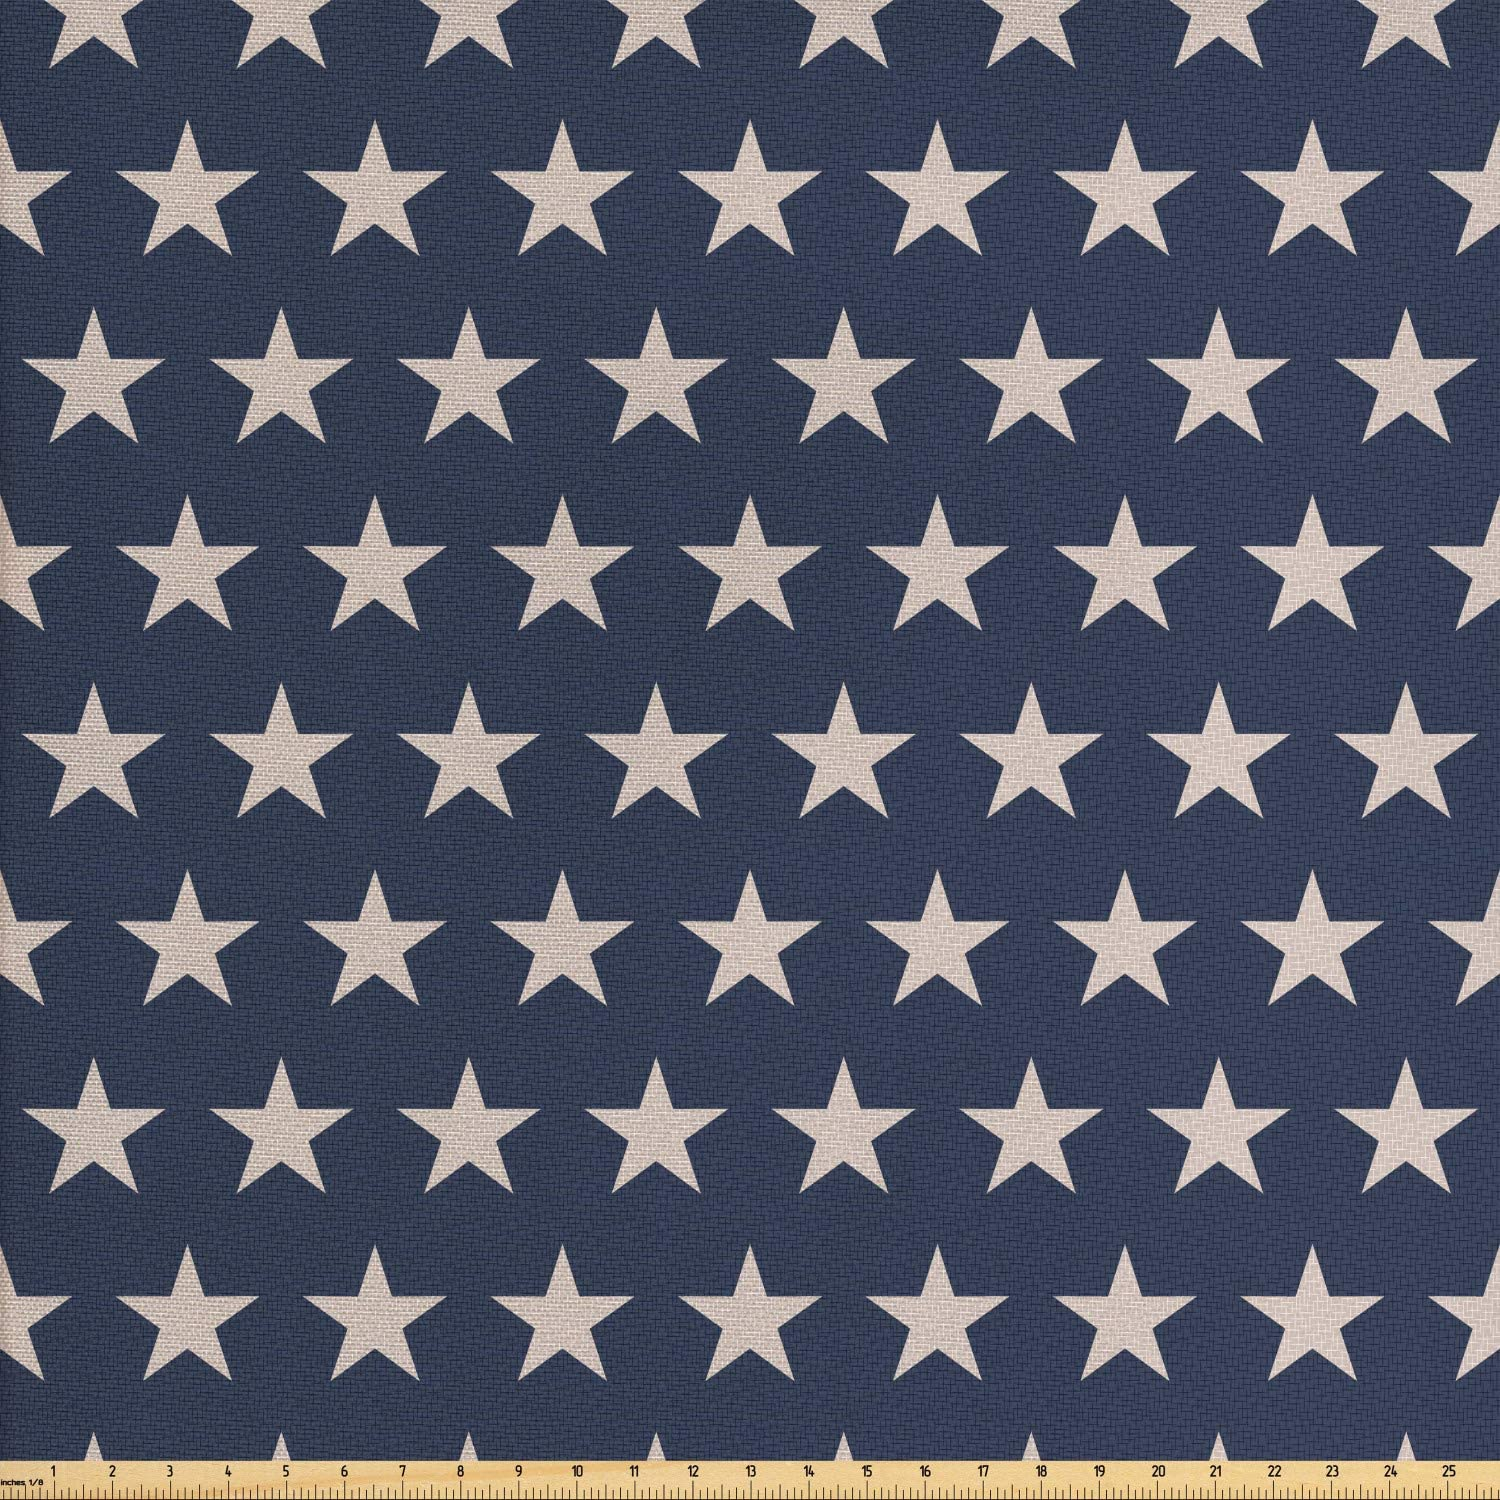 Ambesonne Star Fabric by The Yard, Patriotic Star of The American Flag Independence Themeds of Freedom, Decorative Fabric for Upholstery and Home Accents, 1 Yard, Night Blue